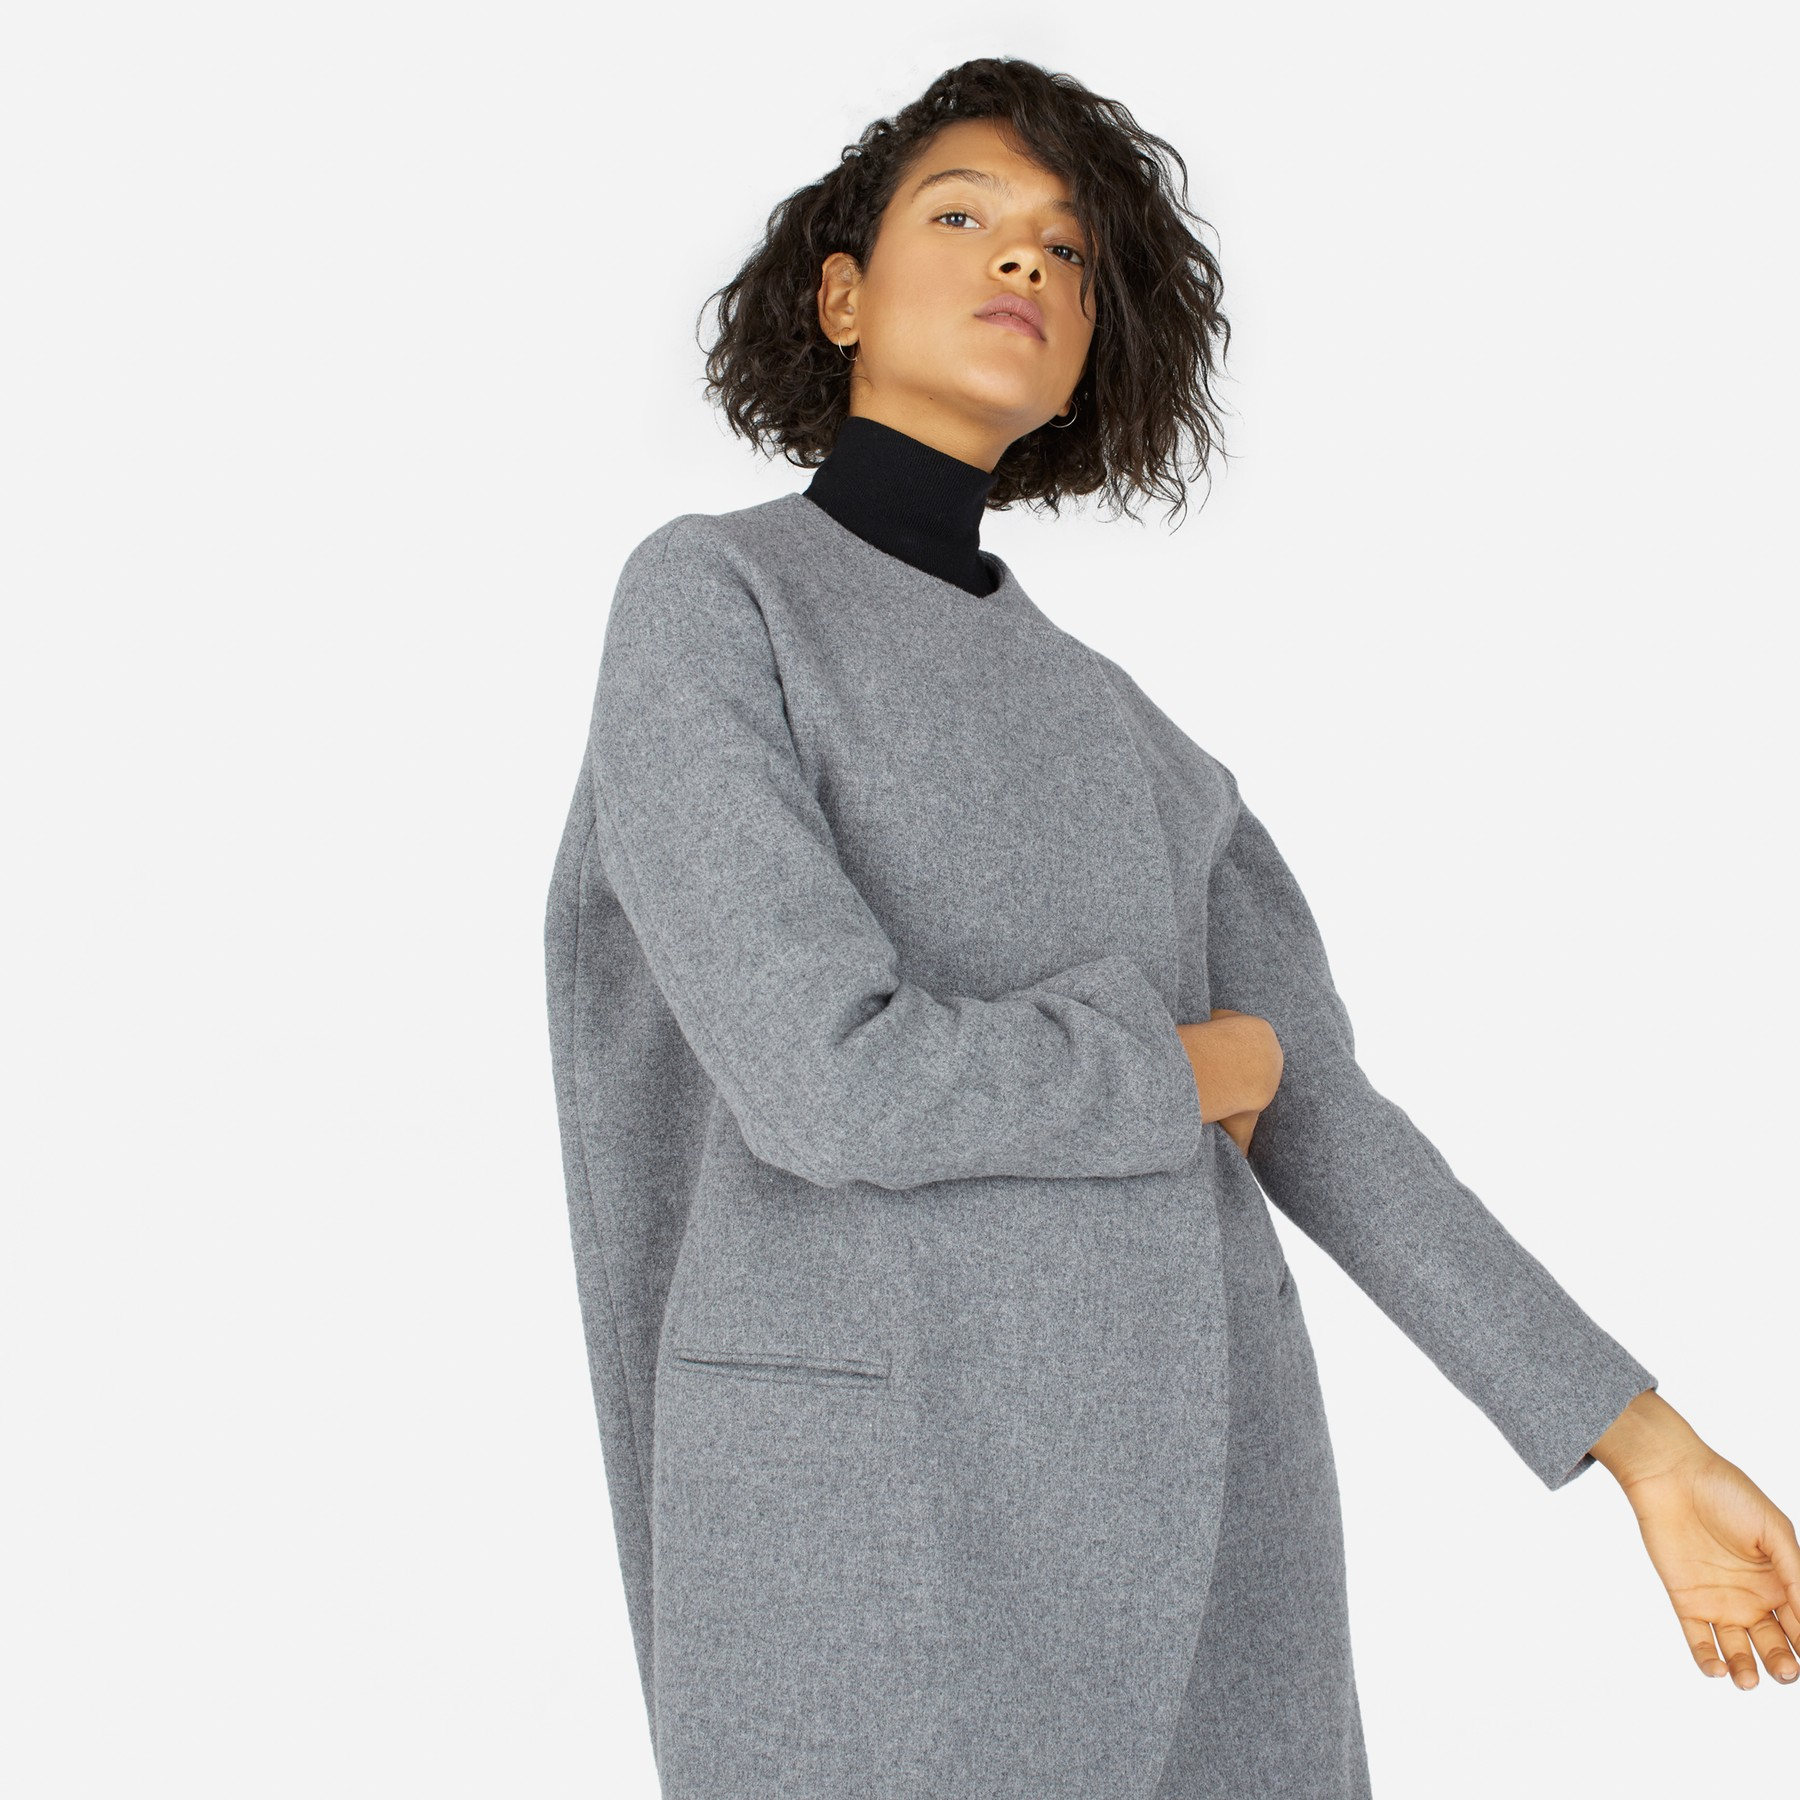 Everlane    $-$$  This is perfect destination for buying knitwear essentials. If you are looking for a simple and elegant camel pullover to wear with your favourite jeans, you can find it here, I promise.